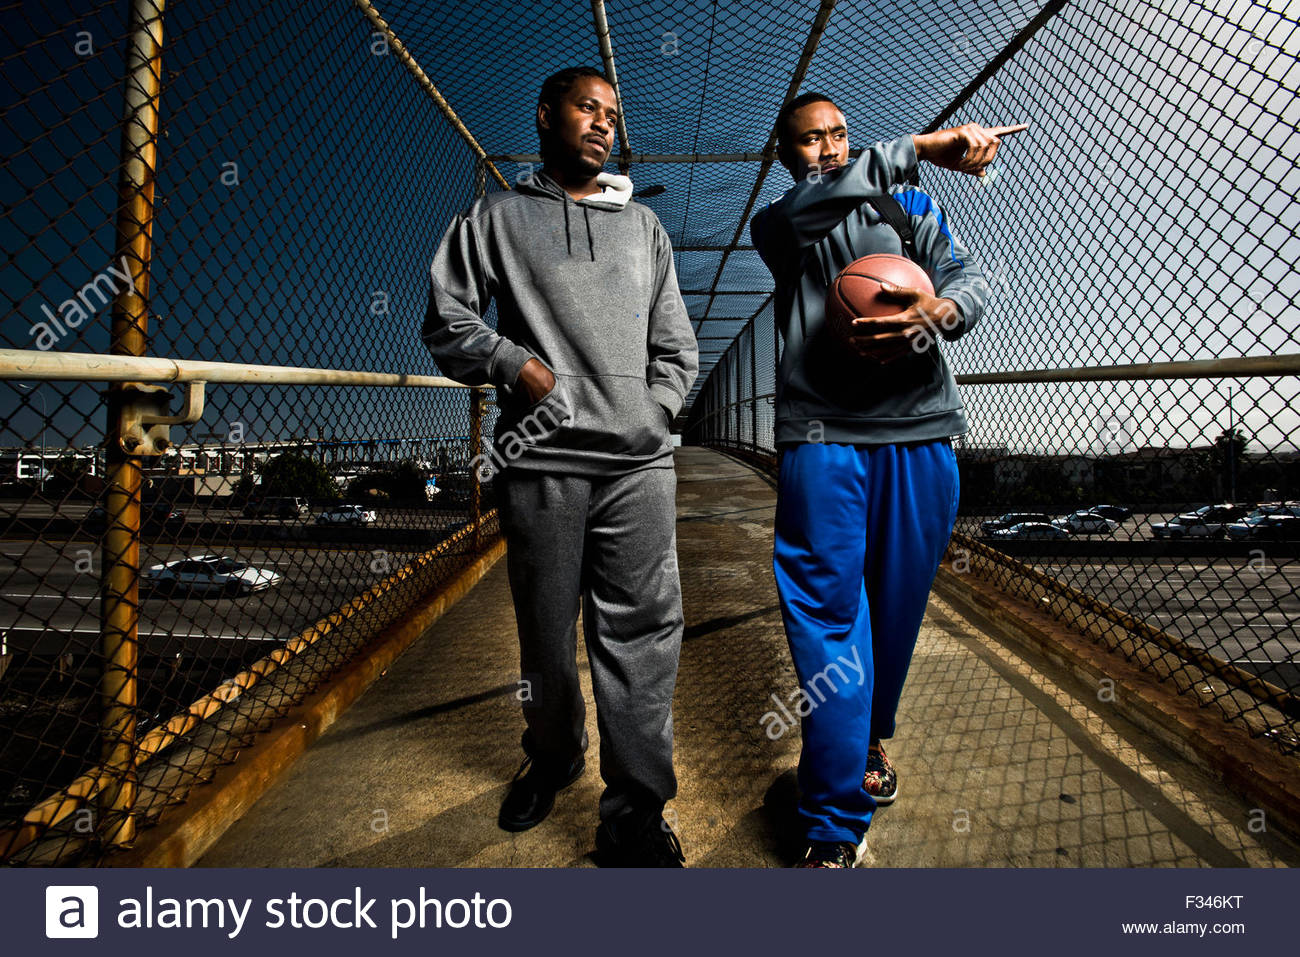 Two young men stroll with a basketball. - Stock Image